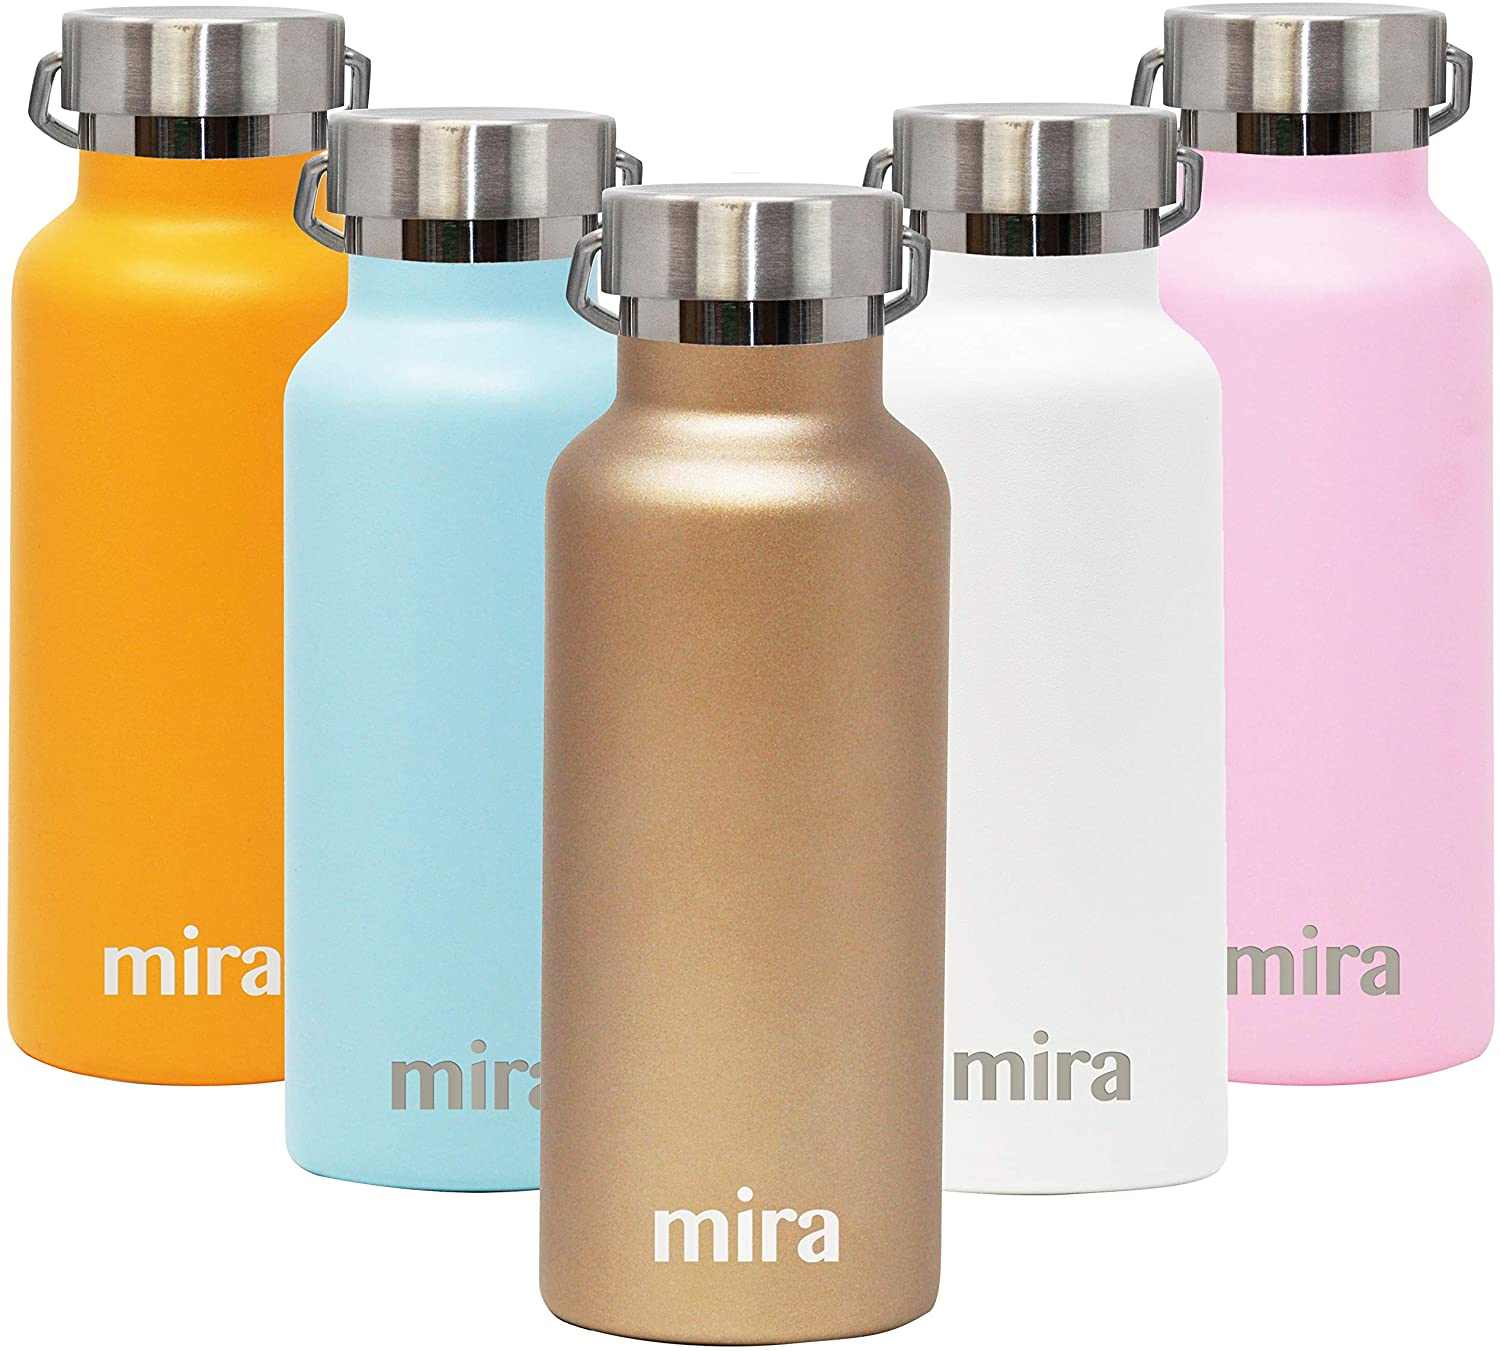 MIRA Alpine Water Bottle with 2 Lids, Vacuum Insulated 18/8 Stainless Steel, Durable Shiny Finish   17 oz (500 ml)   Champagne